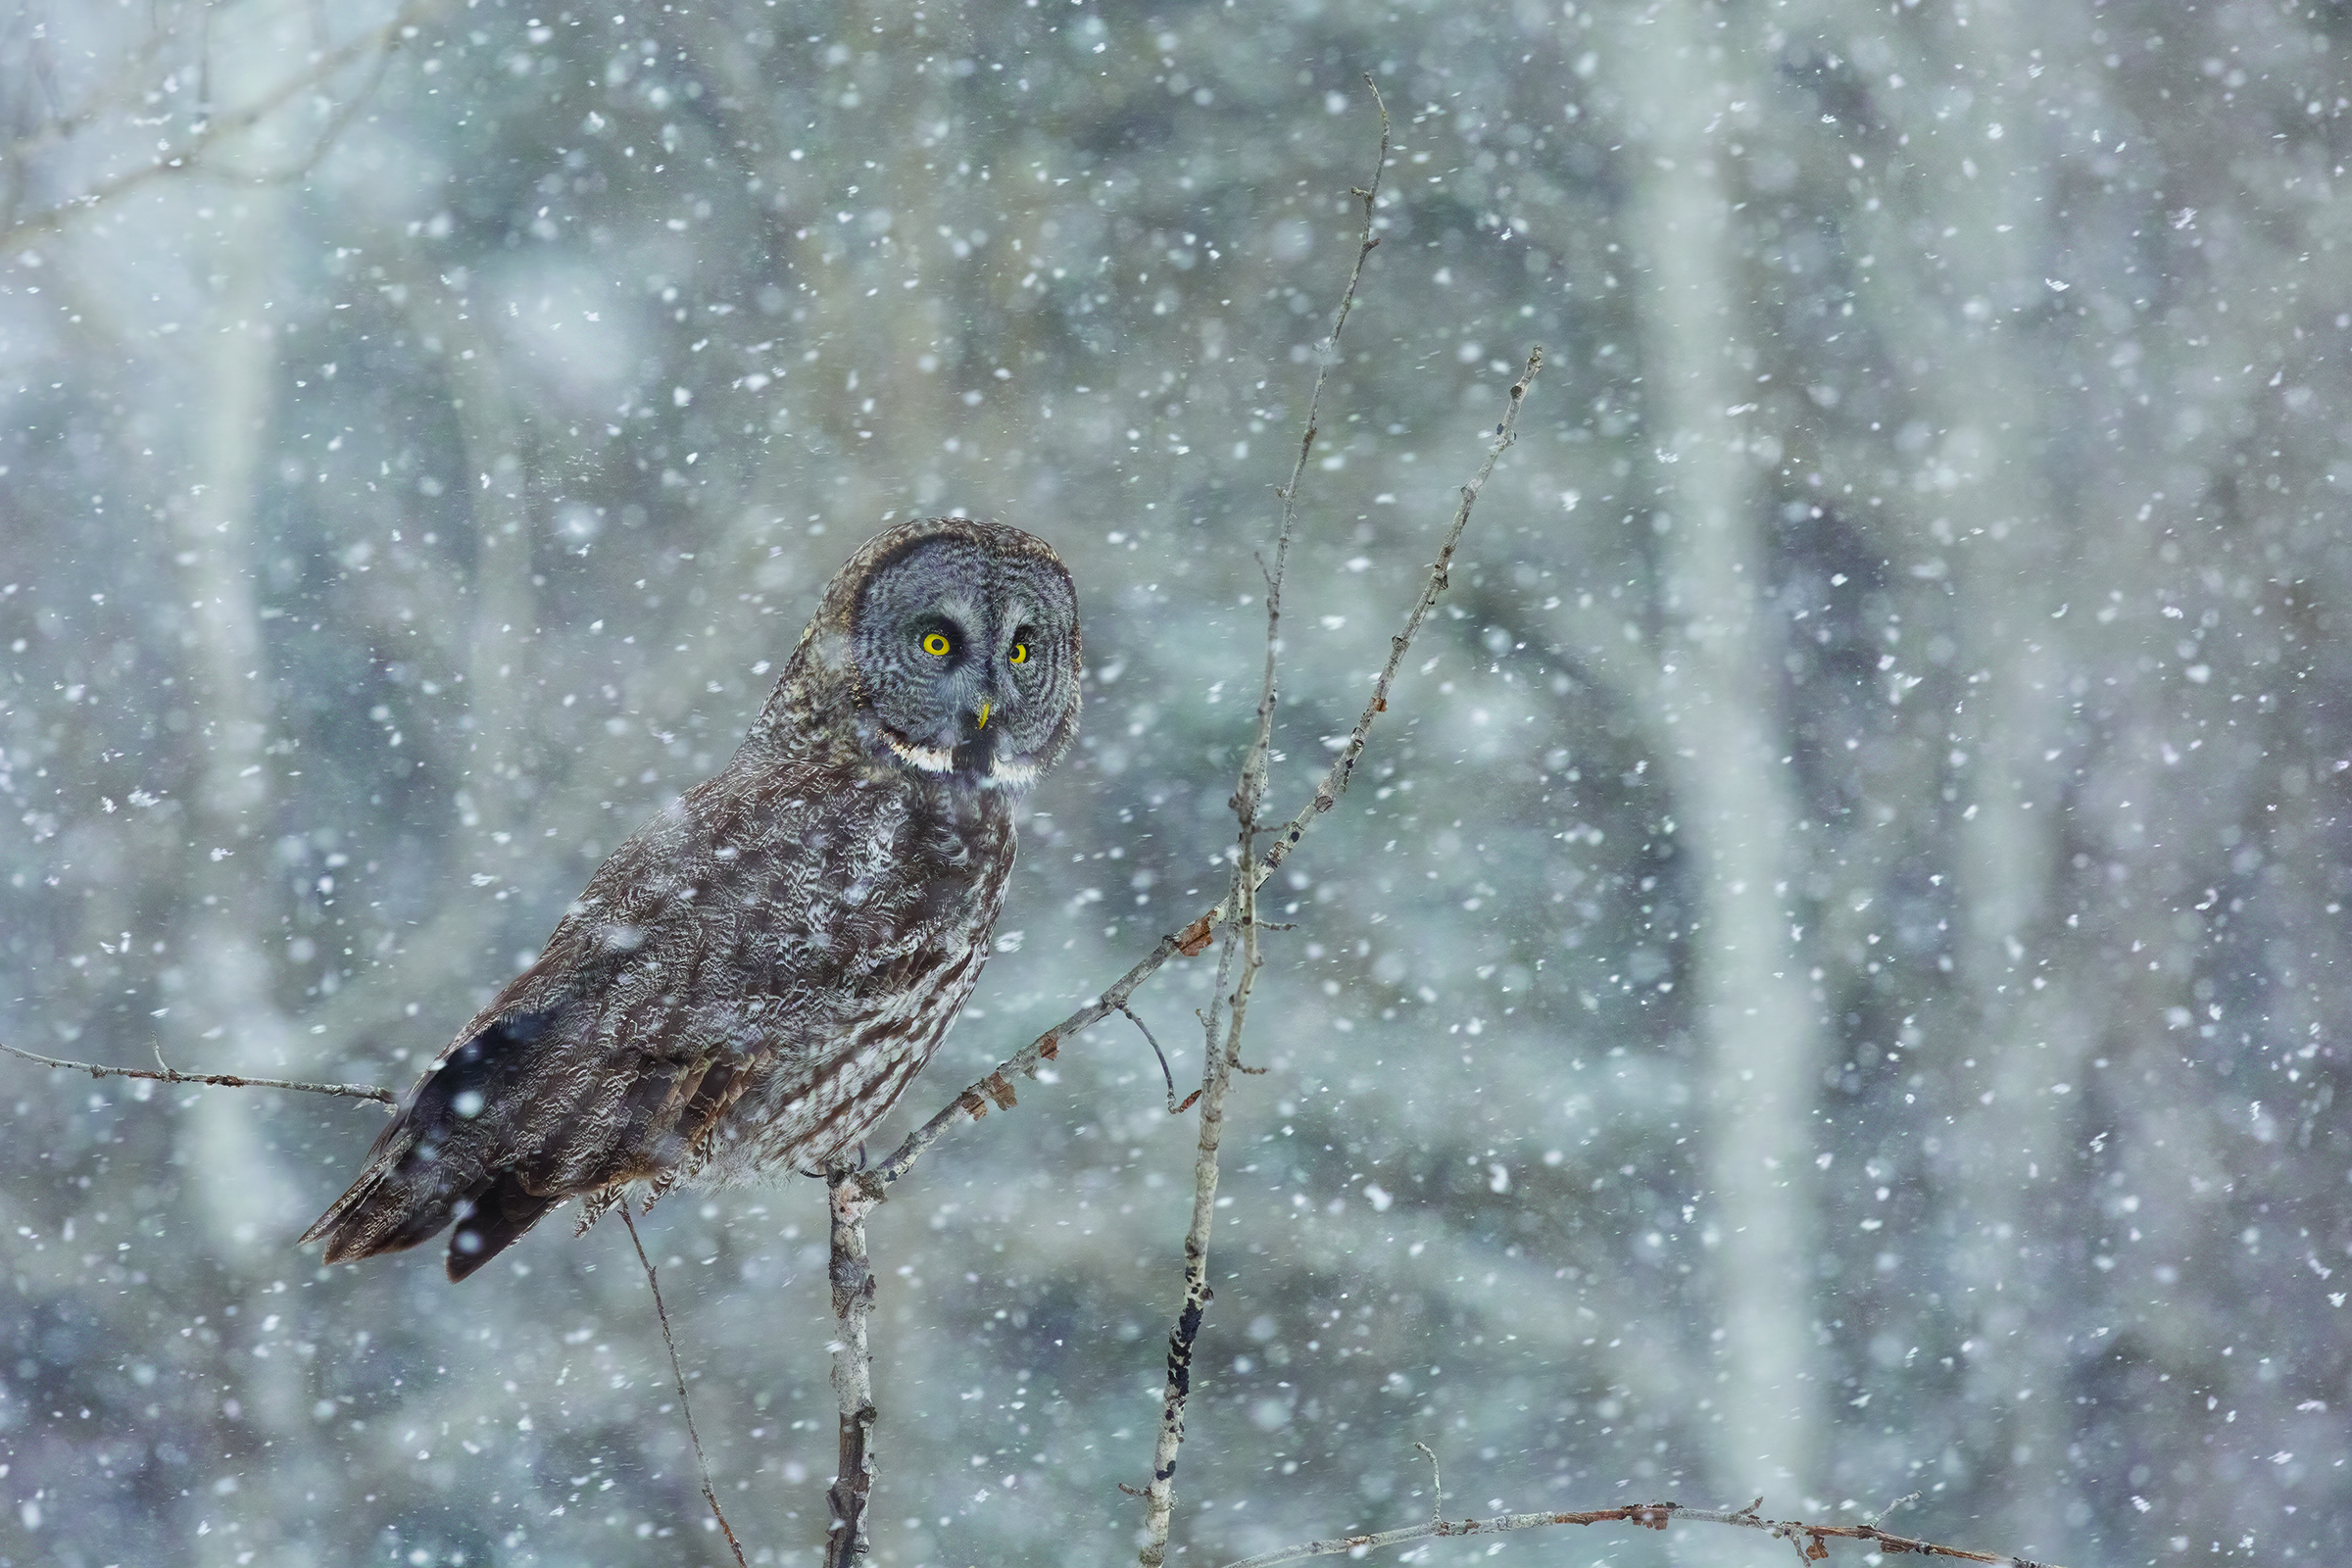 Winter bird photography